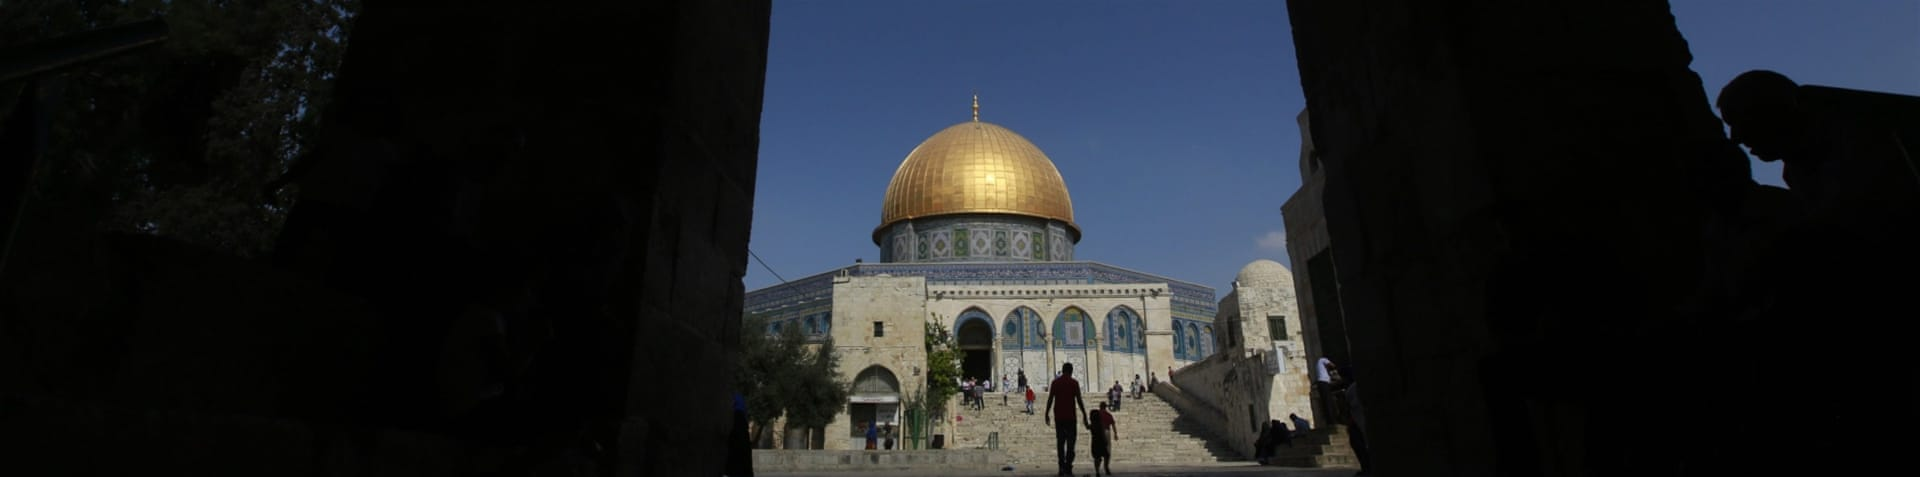 Jewish settlers and hardline right-wing Zionist organisations have called for control over the mosque compound [The Associated Press]